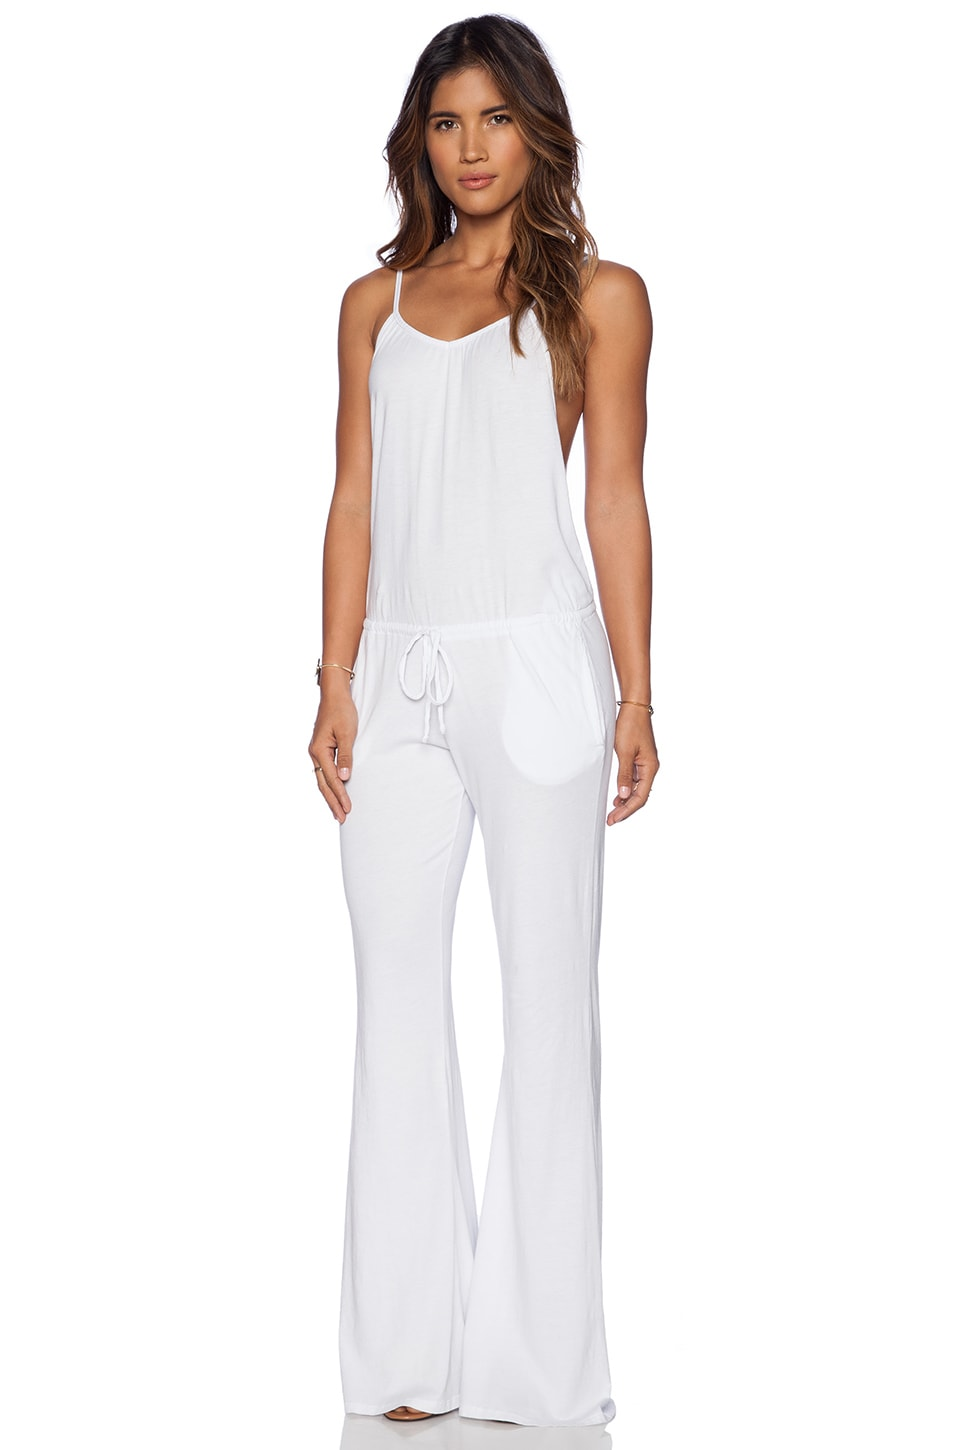 Bobi Modal Jersey Wide Leg Jumpsuit in White